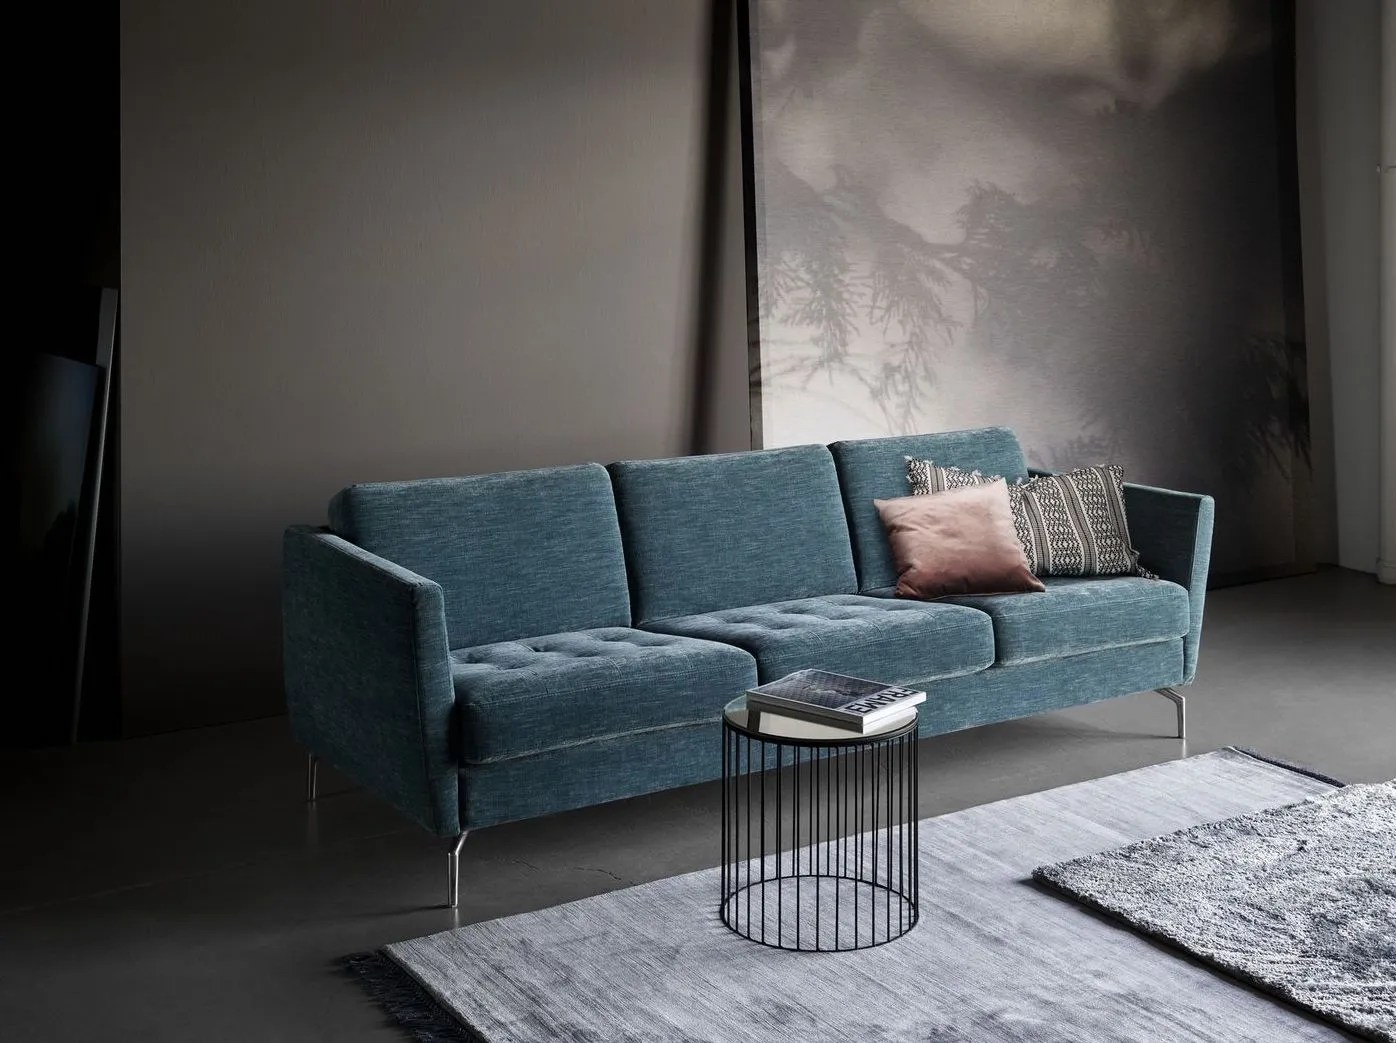 Sofa In A Box Companies The Best Affordable Sofas That Don T Look Like Affordable Sofas